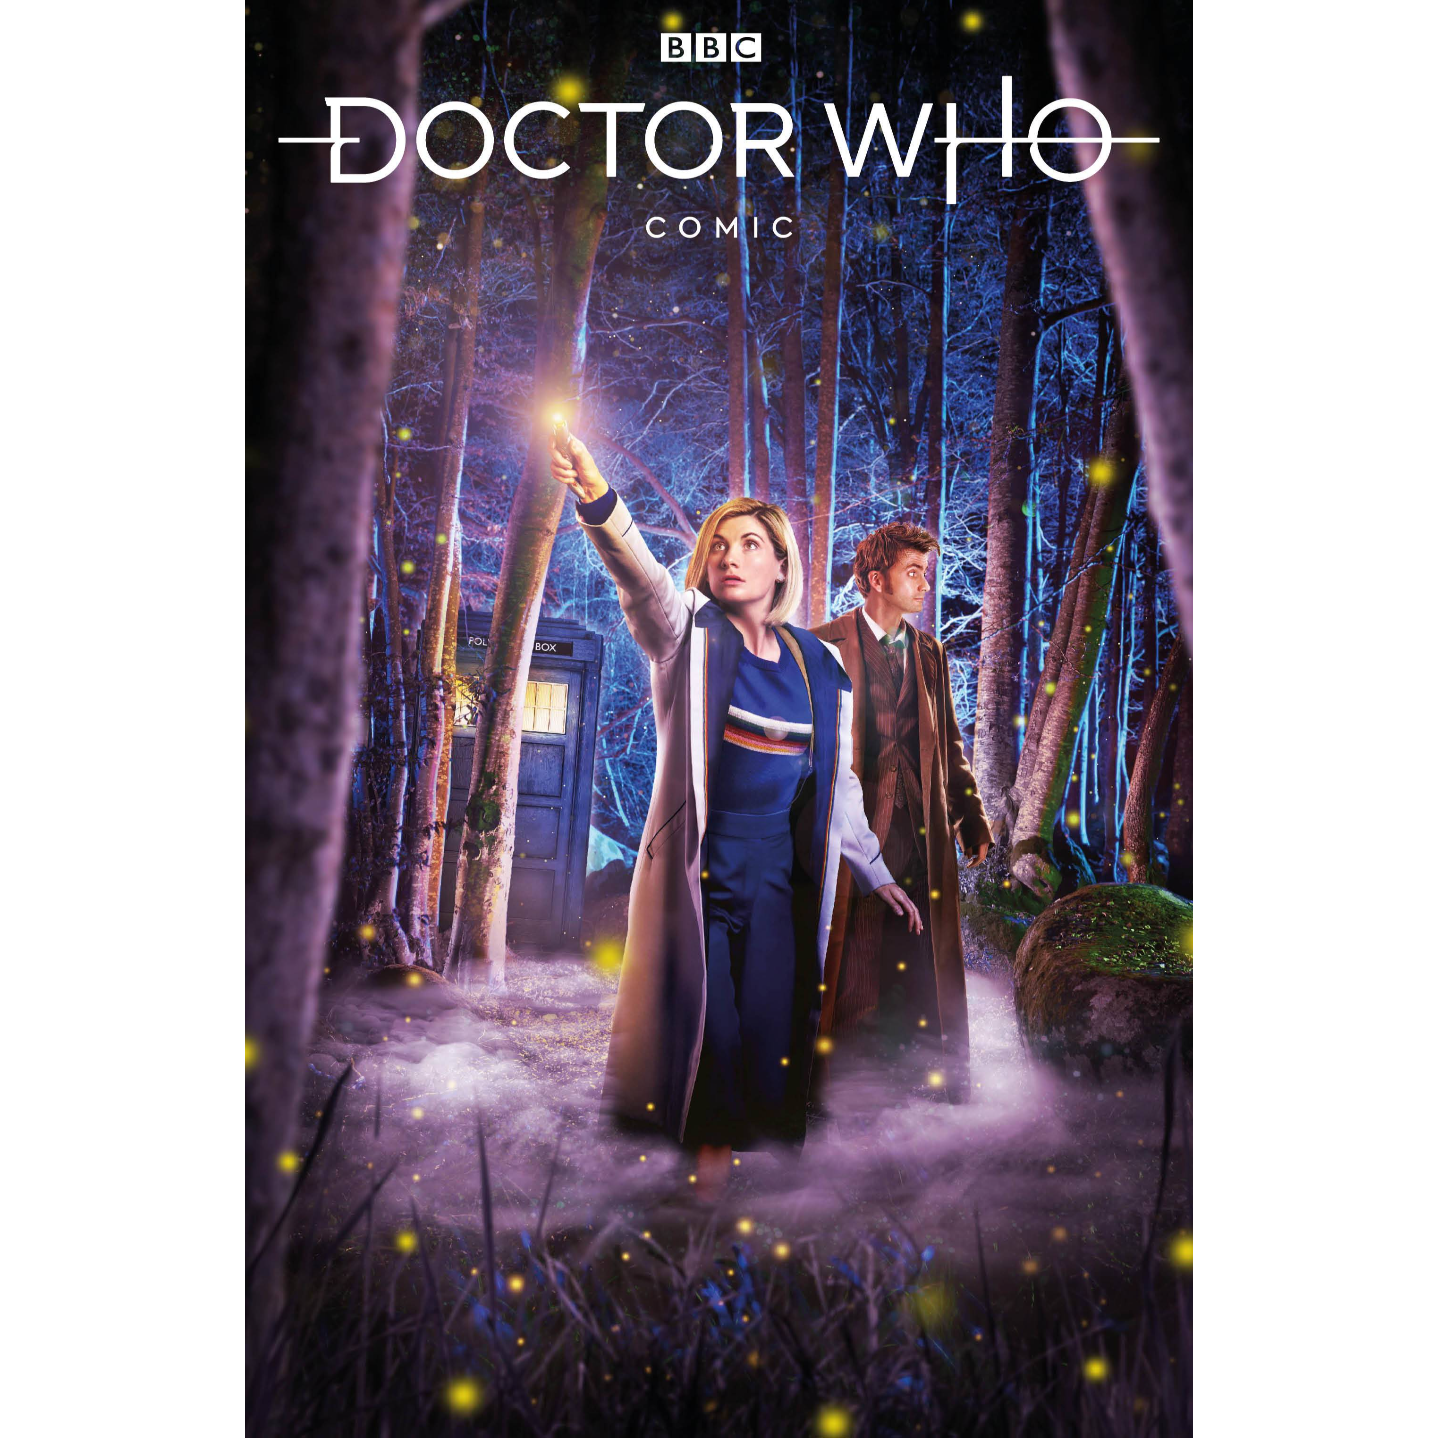 DOCTOR WHO COMICS #4 CVR B PHOTO